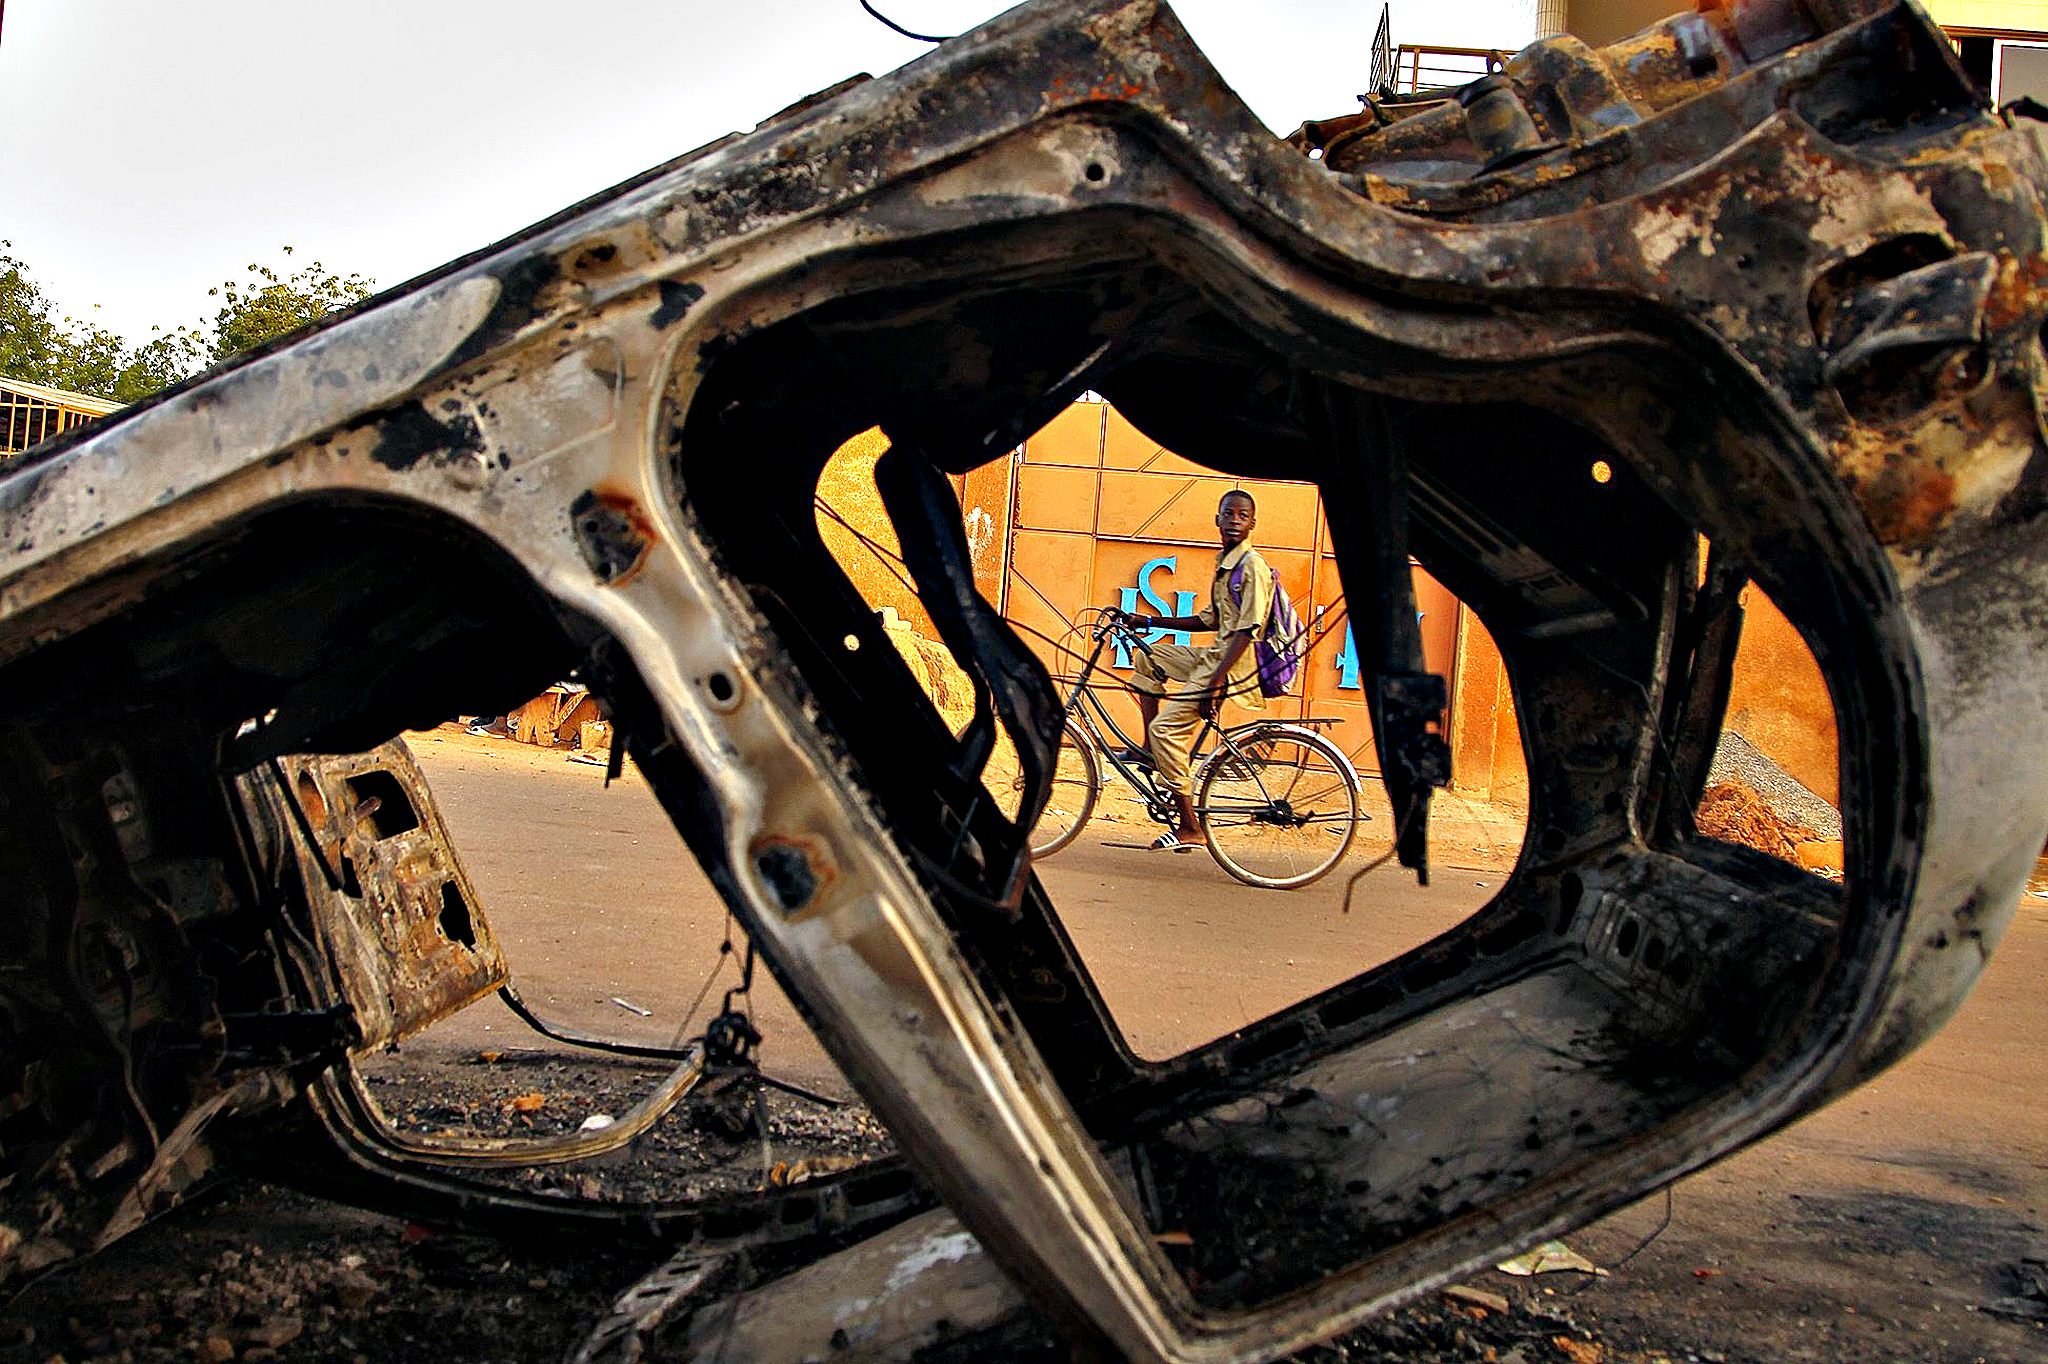 A boy from Burkina Faso cycles past burned vehicles damaged during violent demonstrations by pro democracy protesters that led to the resignation of President Blaise Compaore in Ouagadougou, Burkina Faso, 03 November 2014. President Blaise Compaore resigned on 31 October 2014 following the violent protests against his bid to change the constitution to extend his rule of 27 years. After a brief claim to power by army General Honore Traore a power struggle ensued with Presidential guard commander Lieutenat-Colonel Isaac Zide being appointed as transitional leader. Thousands of protesters took to the Place de la Nation on 02 November in protest against the military rule.